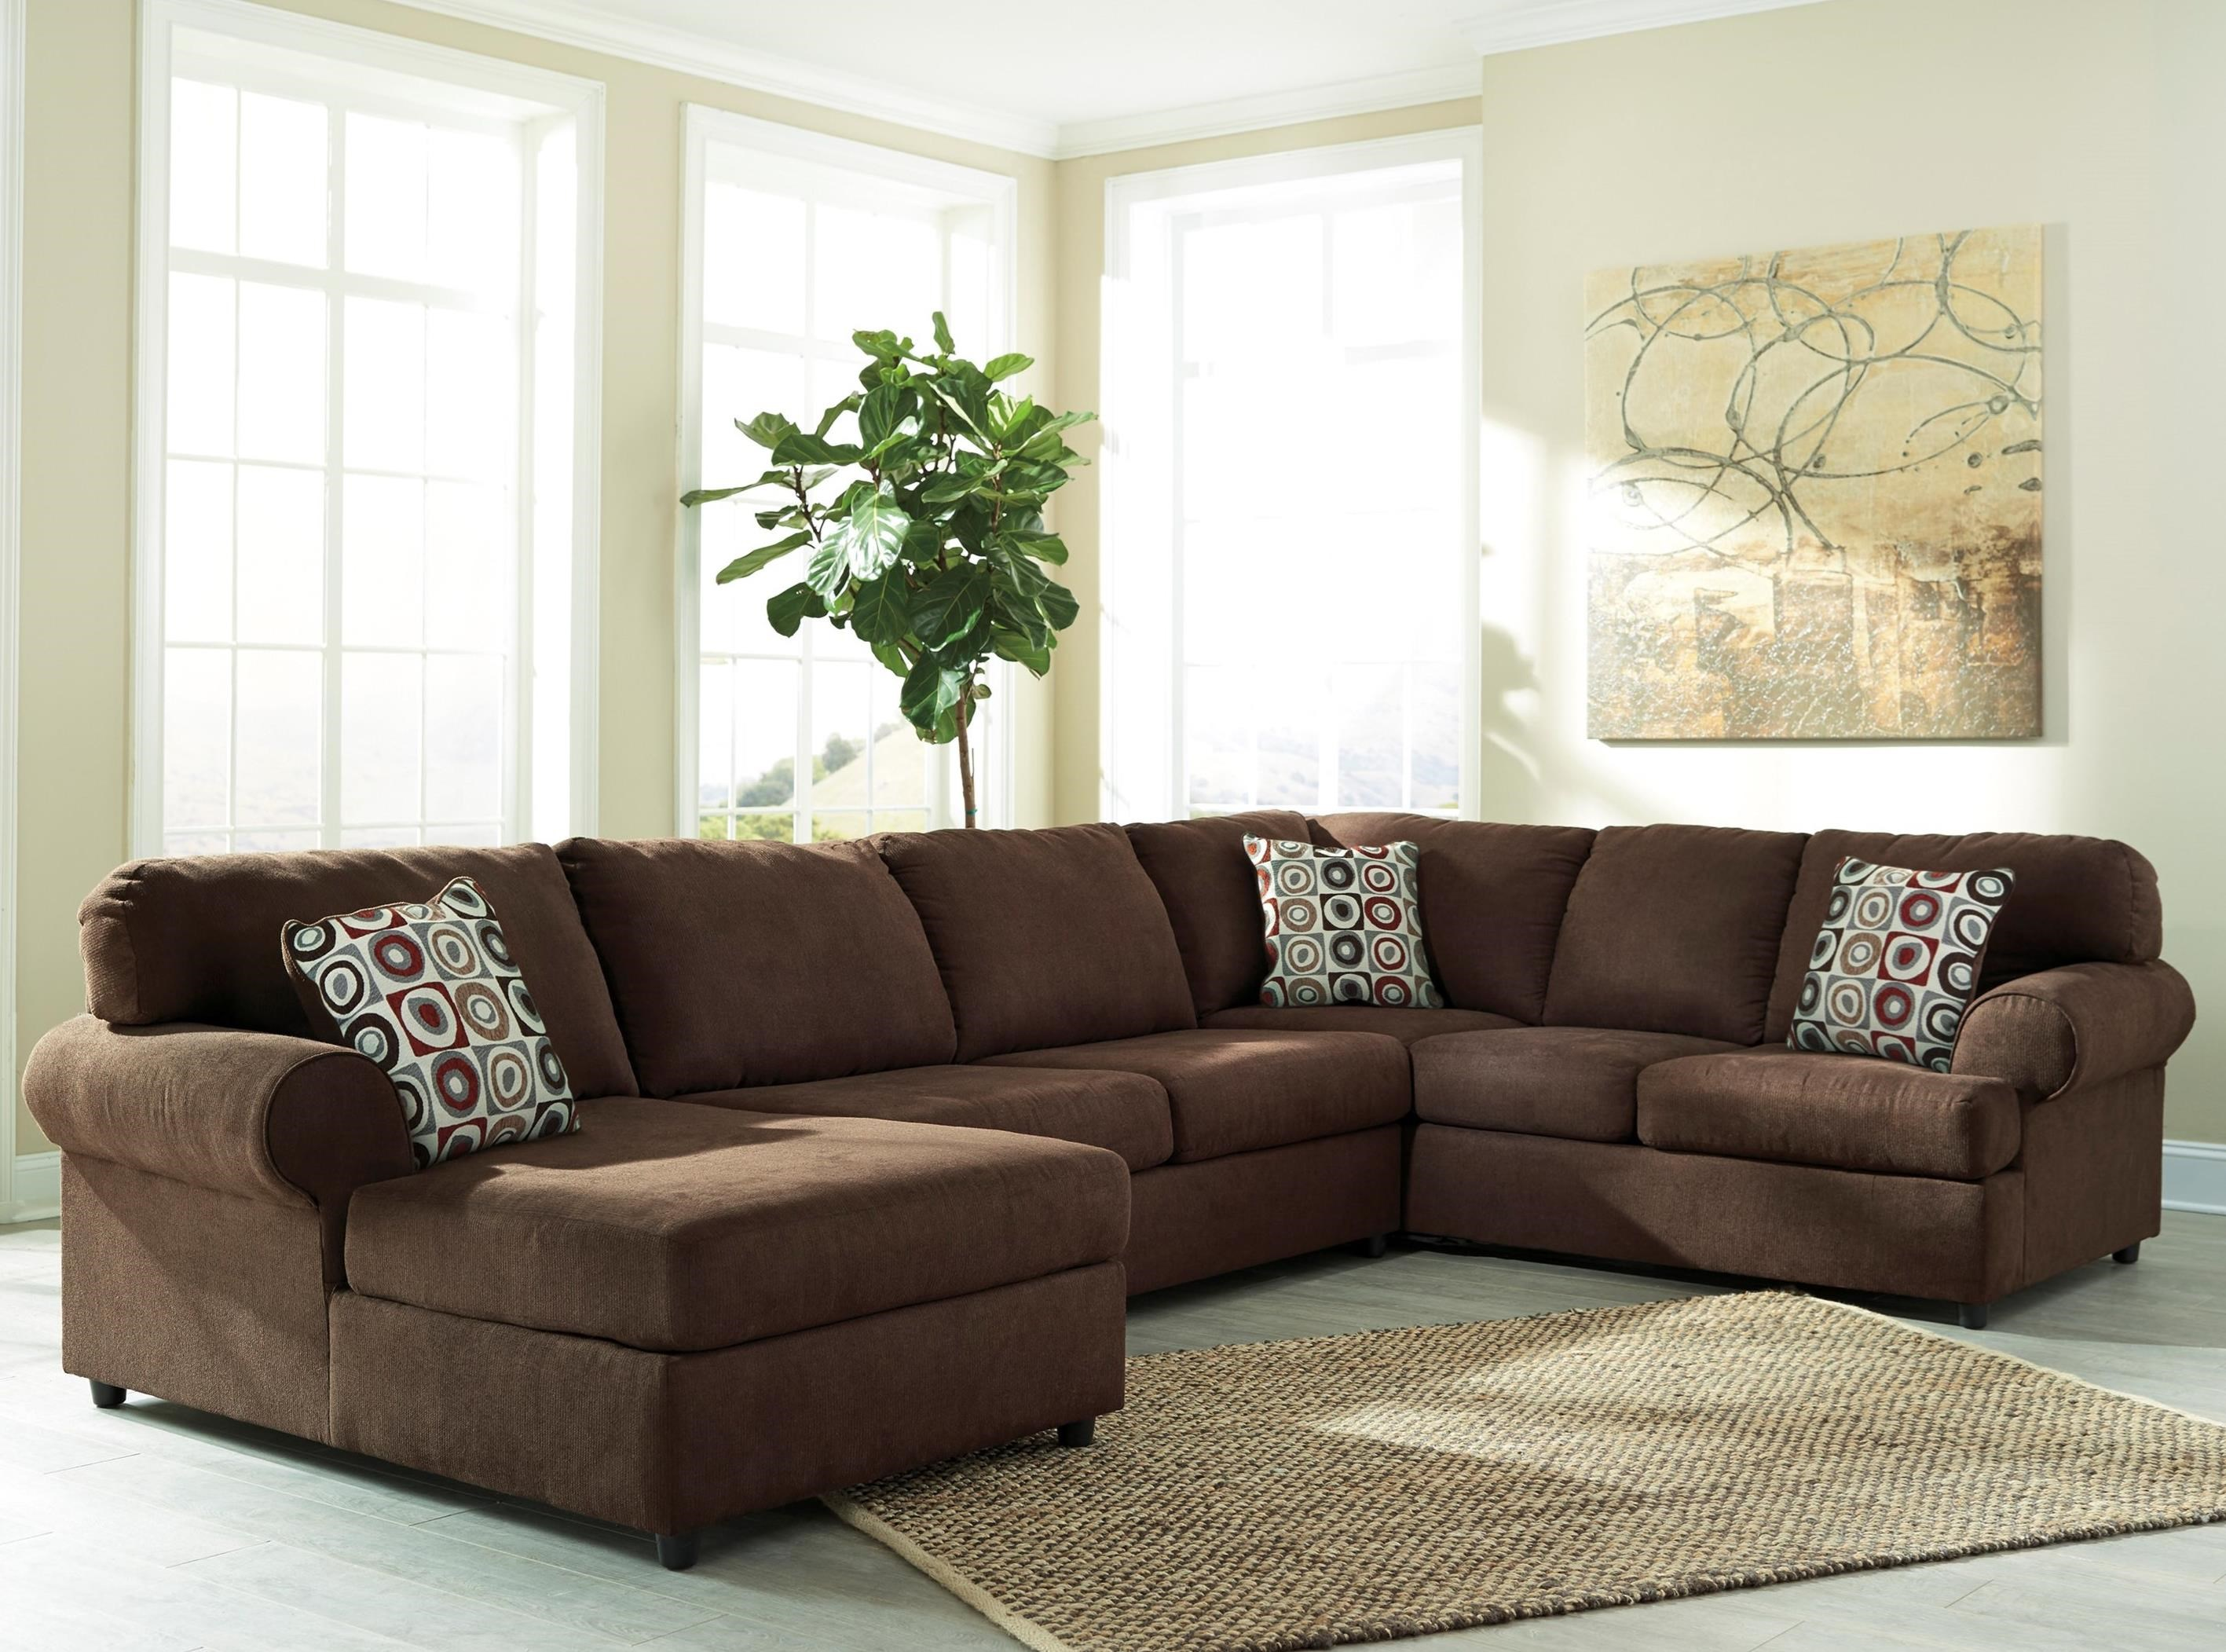 Signature Design by Ashley Jayceon 3-Piece Sectional with Chaise - Item Number: 6490416+34+67